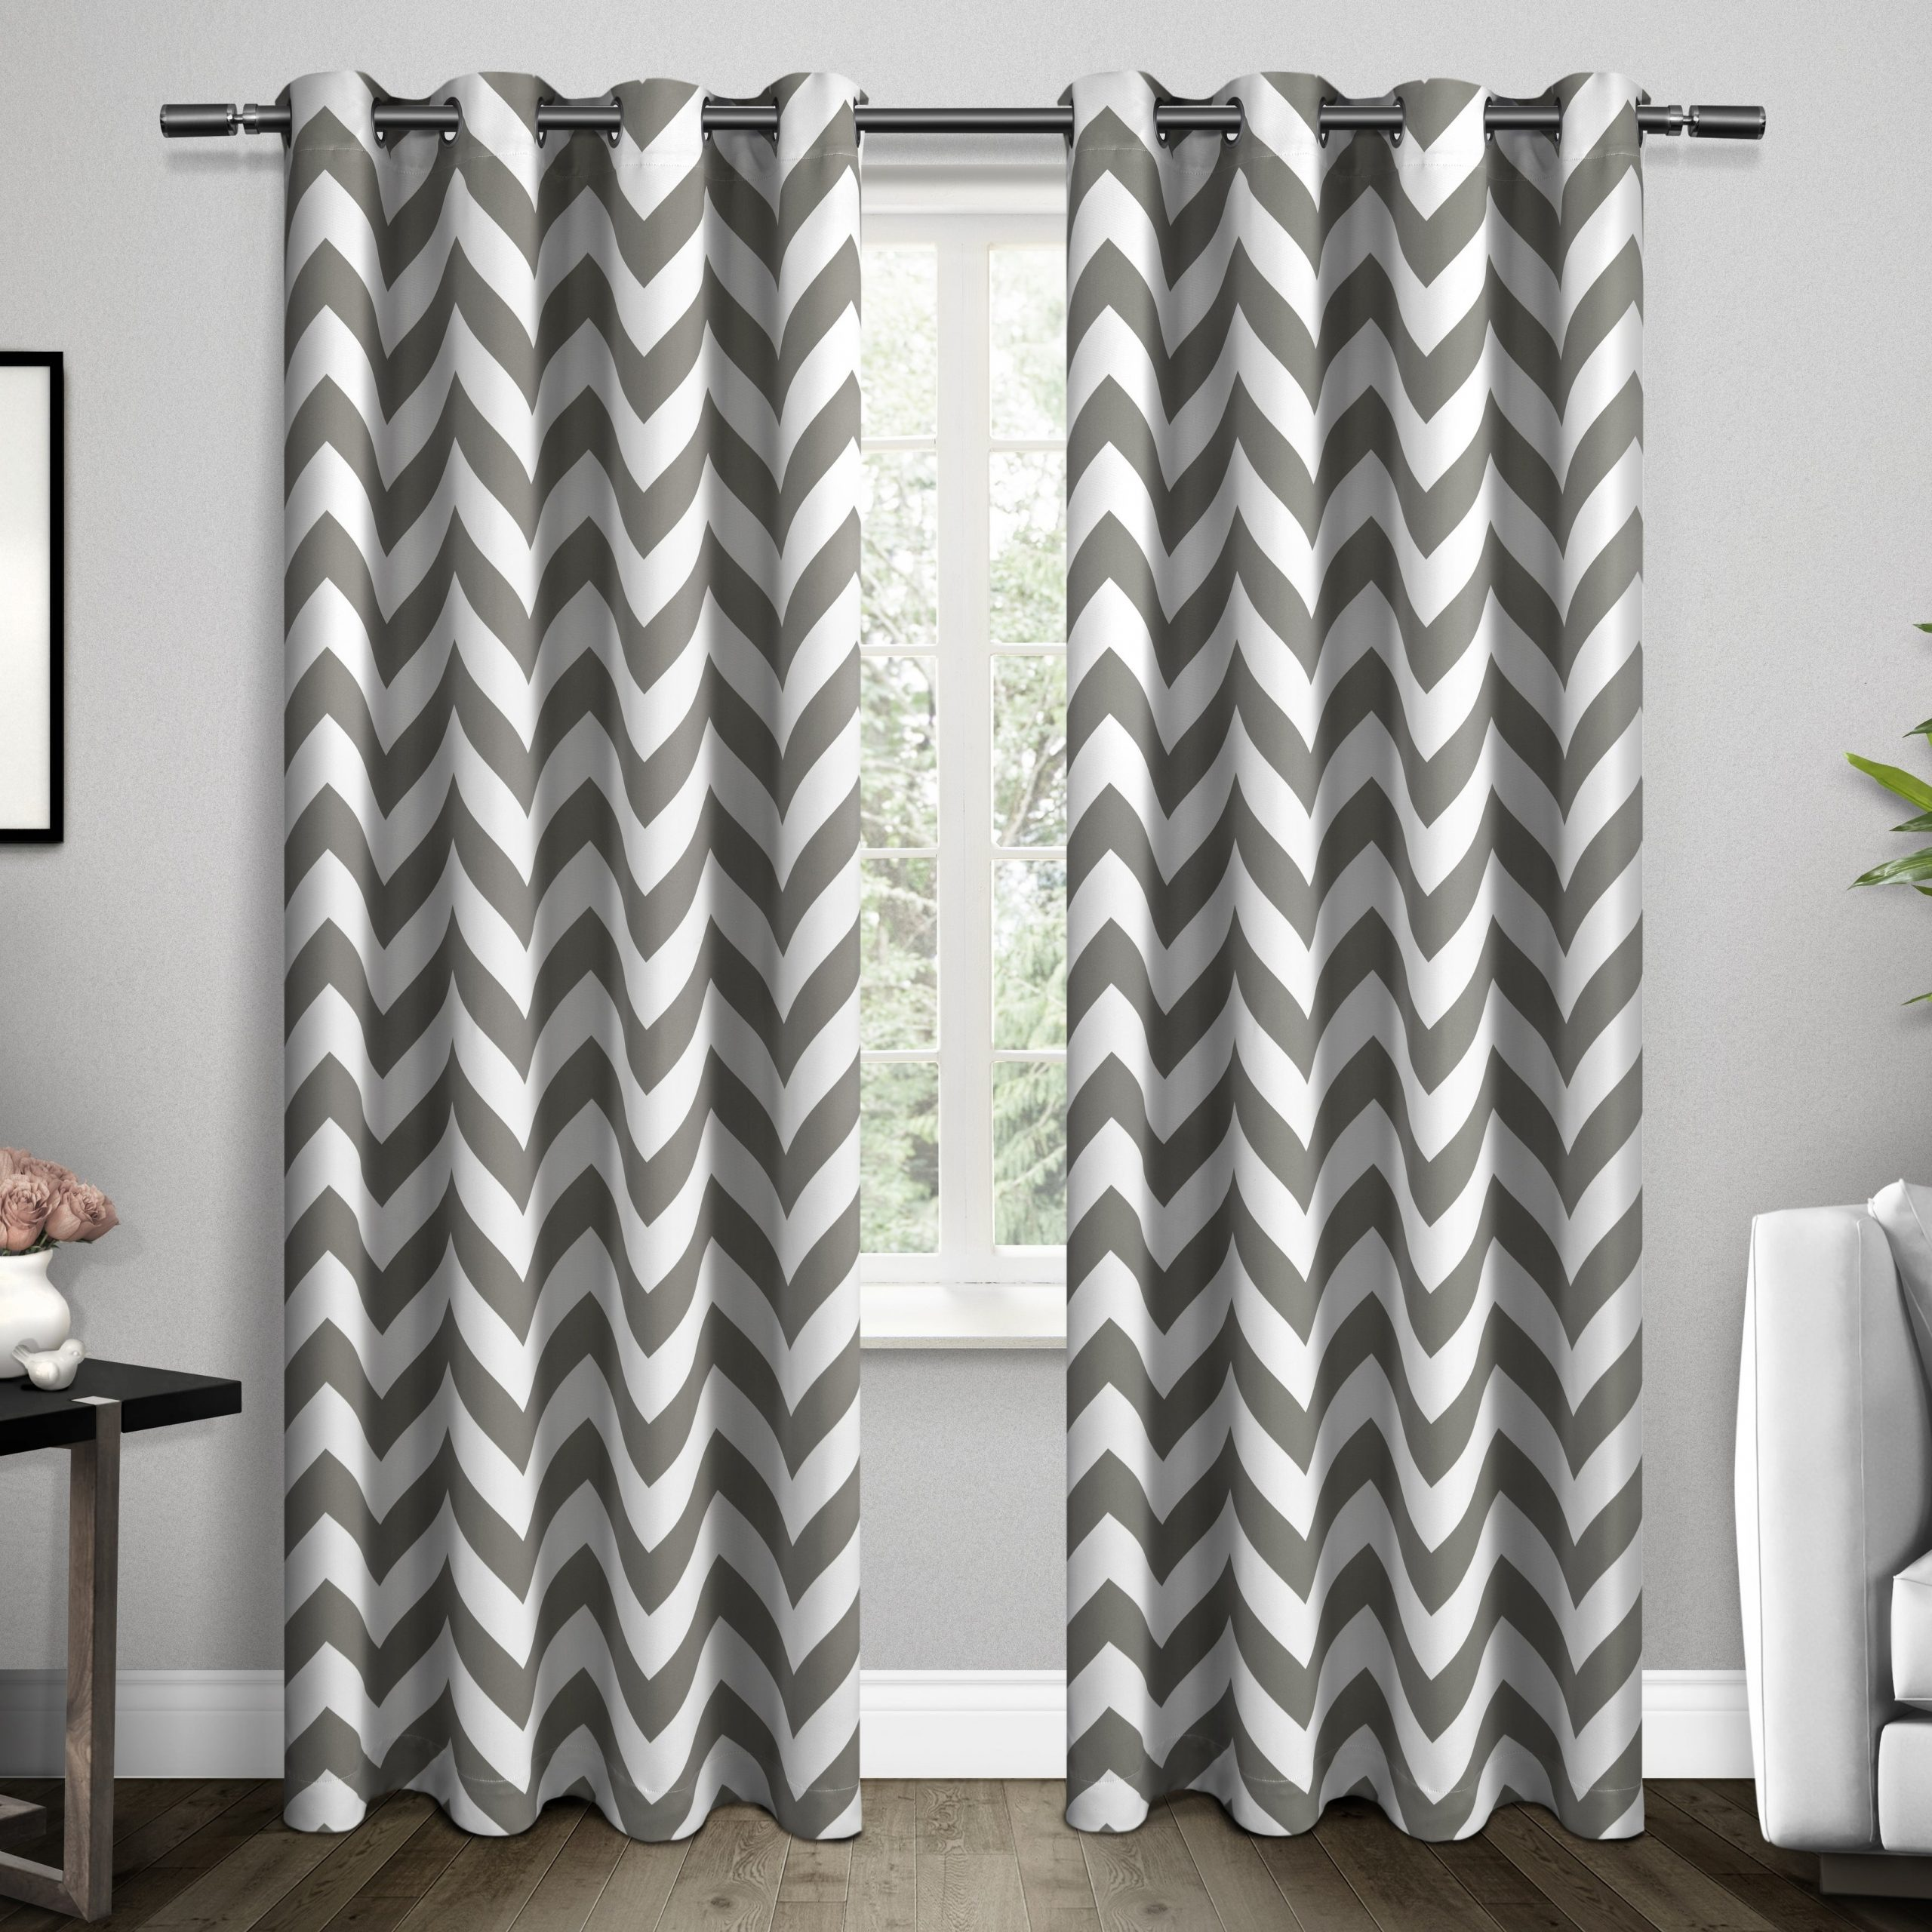 Recent Ati Home Mars Thermal Woven Blackout Grommet Top Curtain Panel Pair Regarding Easton Thermal Woven Blackout Grommet Top Curtain Panel Pairs (View 3 of 20)